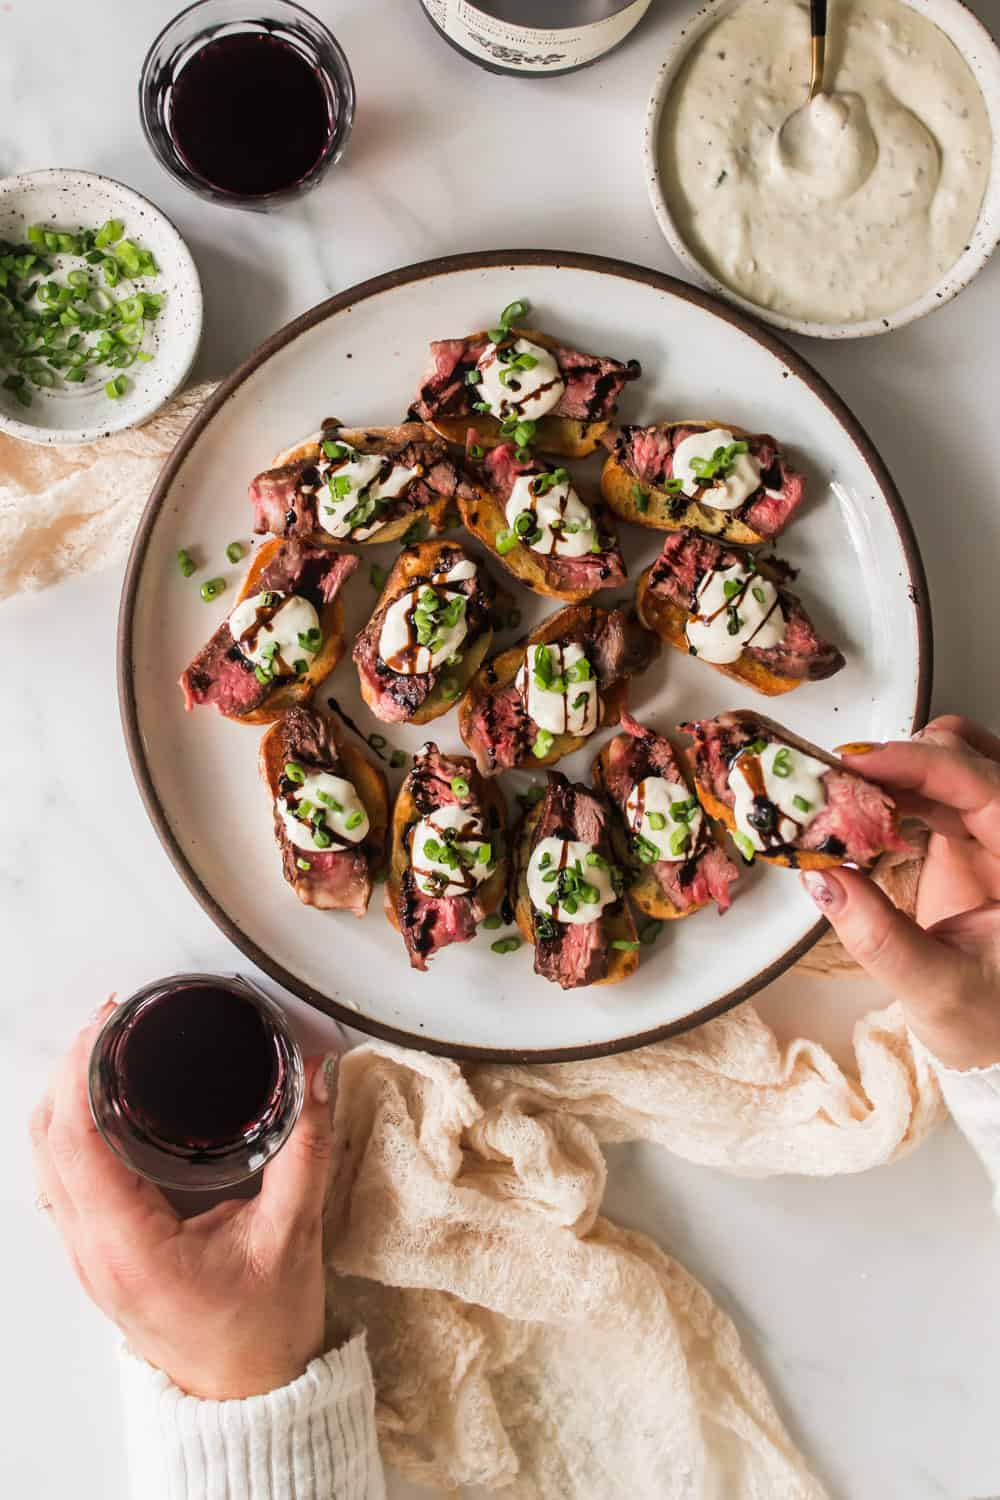 Woman's hand holding a crostini topped with sliced steak, white cheese sauce, and balsamic